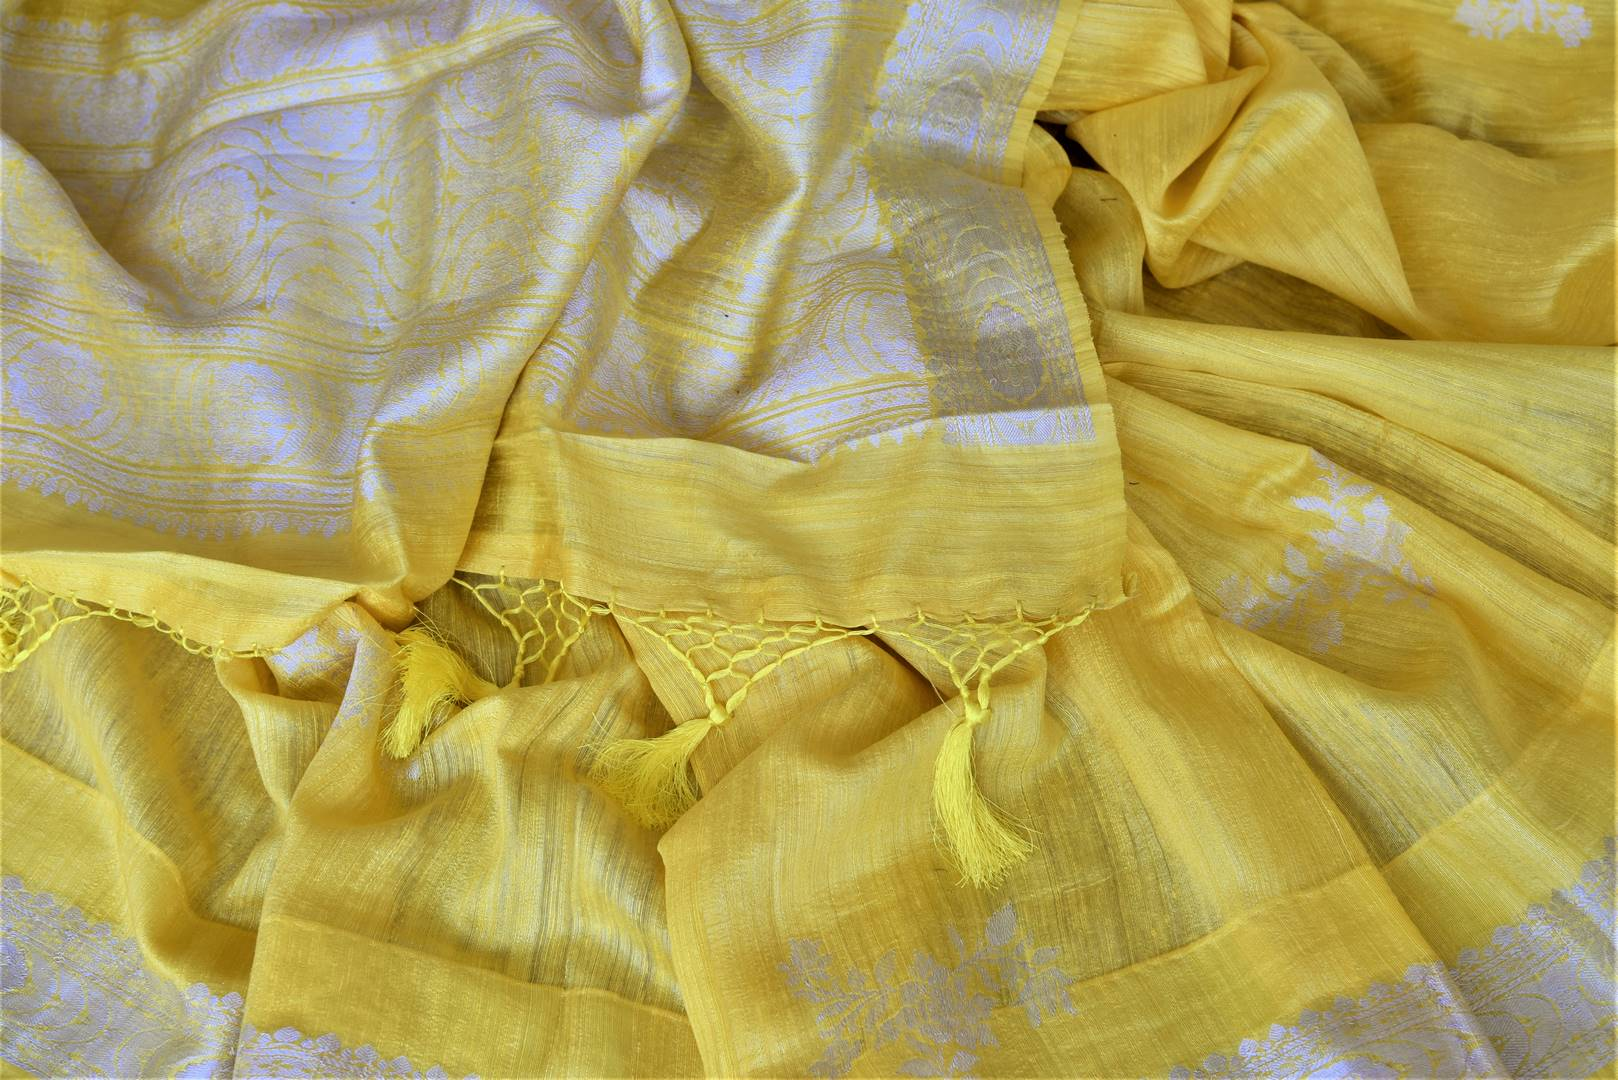 Buy beautiful lemon yellow tussar Benarasi sari online in USA with silver zari border. For Indian women in USA, Pure Elegance Indian fashion store brings an exquisite collection Banarasi sarees, Banarasi silk saris, tussar sarees,  work sarees, pure silk sarees all under one roof. Shop online now.-details